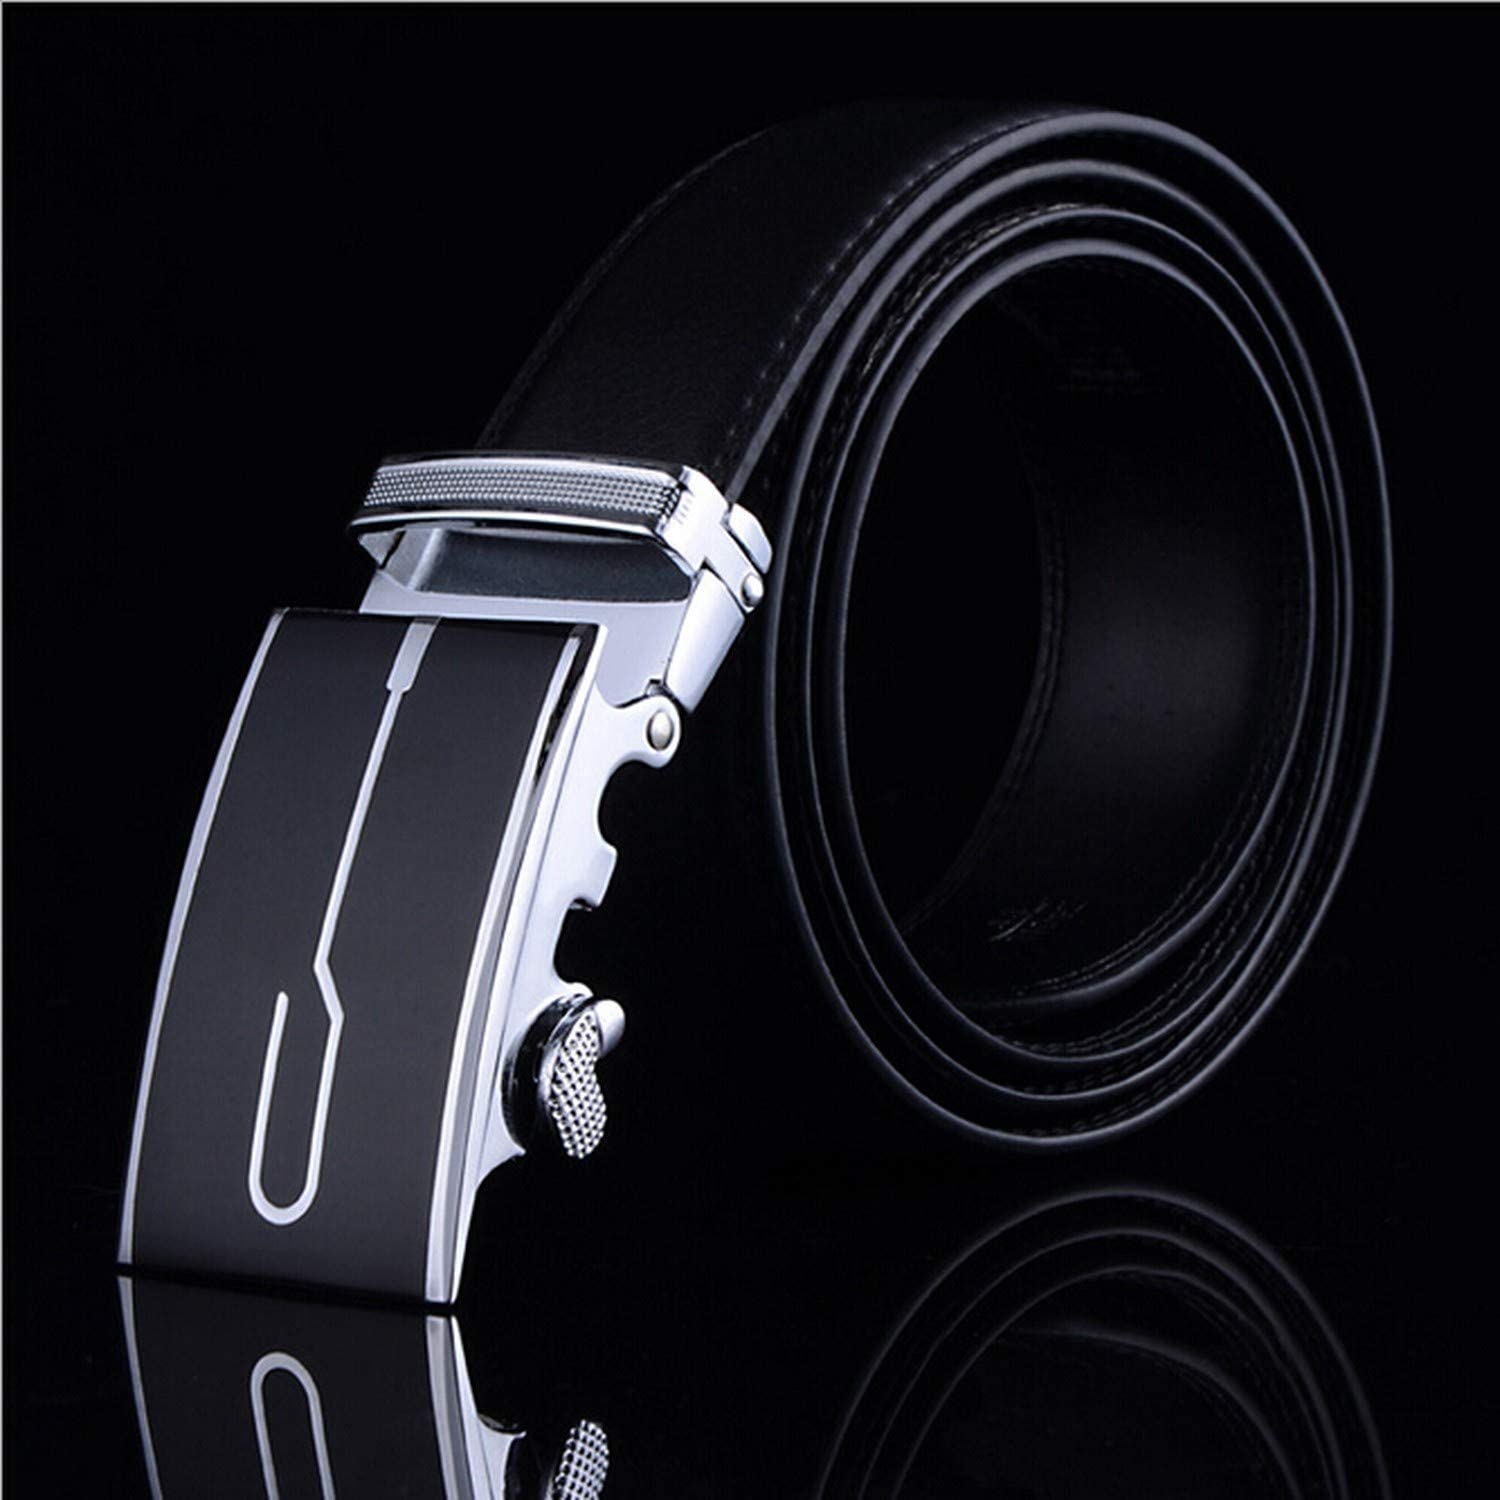 Mens Business Fashion Formal Casual Style Belt Designer Leather Strap Male Man Belt Automatic Buckle Belts For Men Top Quality,19,125cm